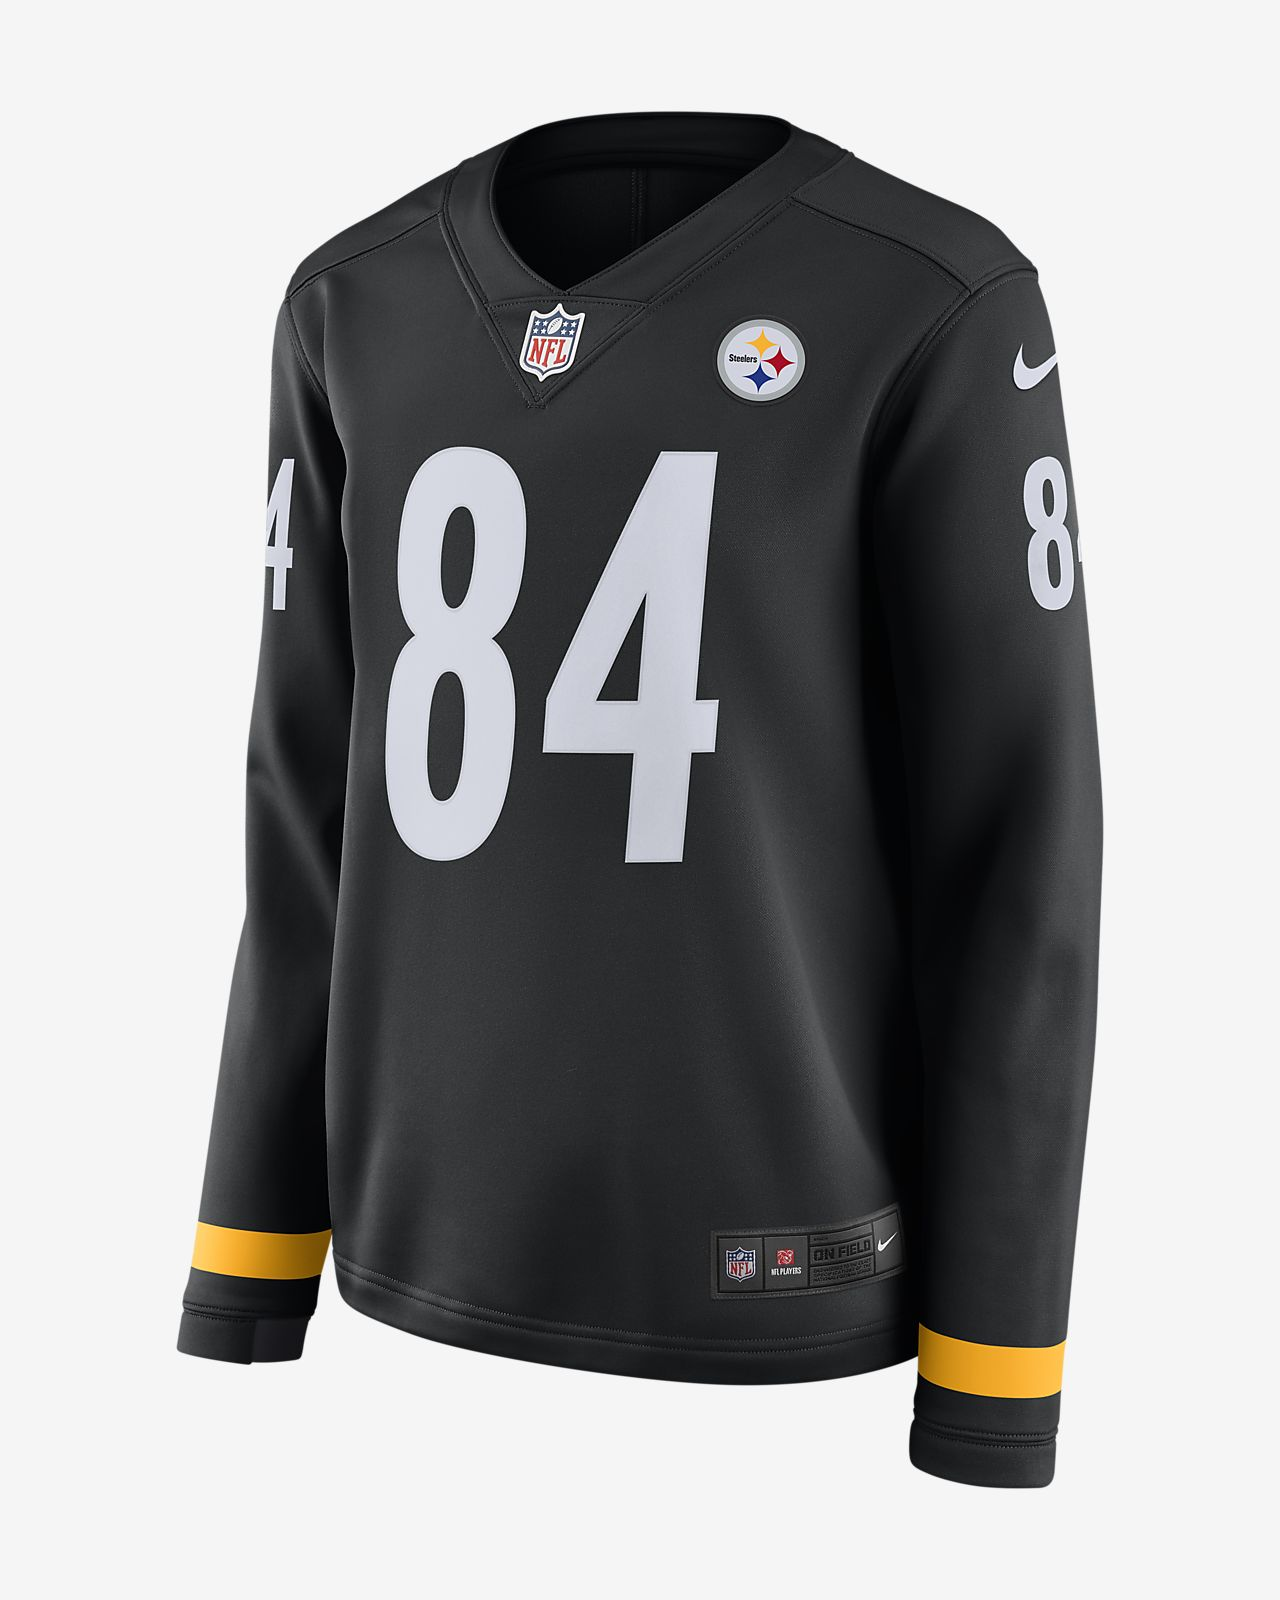 Women s Long-Sleeve Football Jersey. NFL Pittsburgh Steelers (Antonio Brown) ac56ded16d